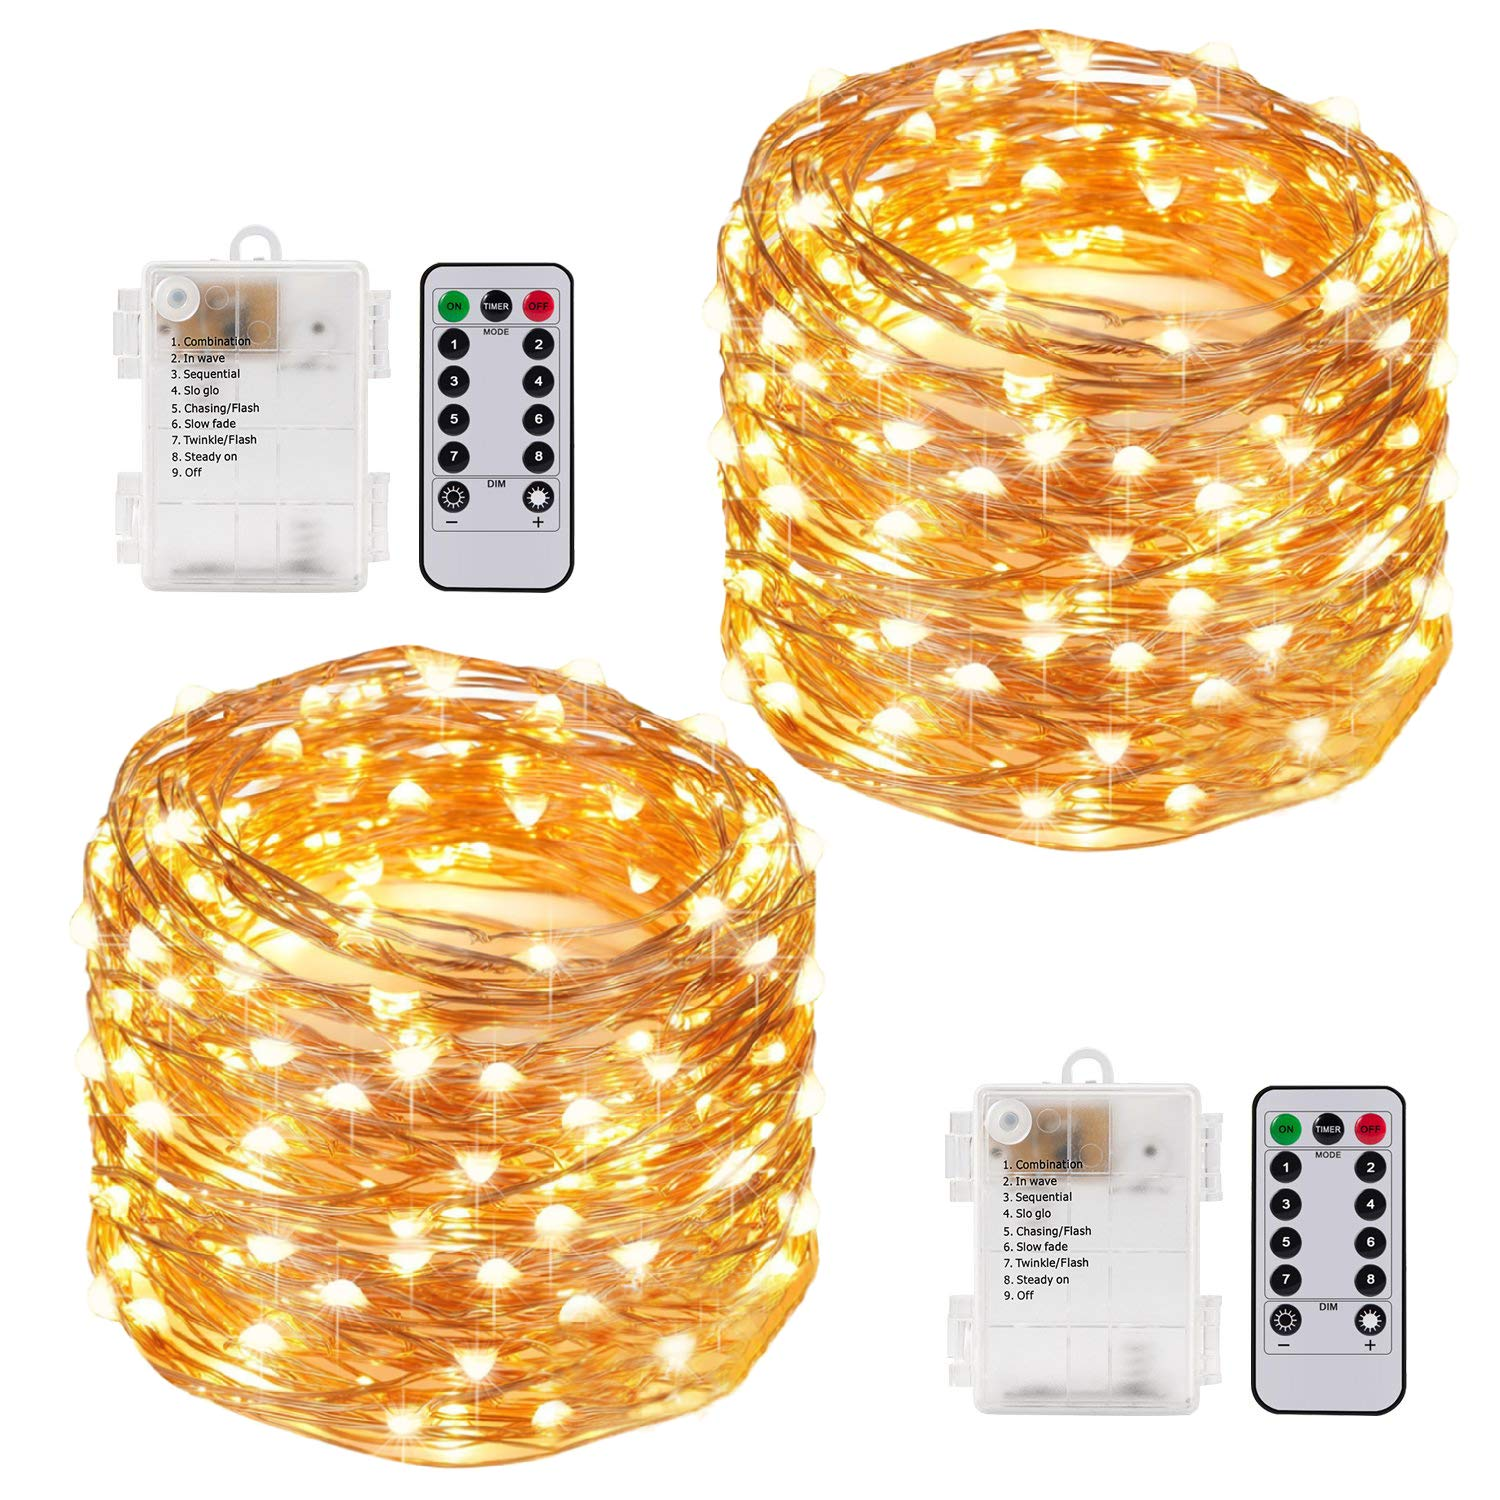 Kohree String Lights LED Copper Wire Fairy Christmas Tree Light with Remote Control, 33ft/10M 100LEDs, AA Battery Powered, Twinkle Lights for Holiday, Wedding, Parties, Pack of 2